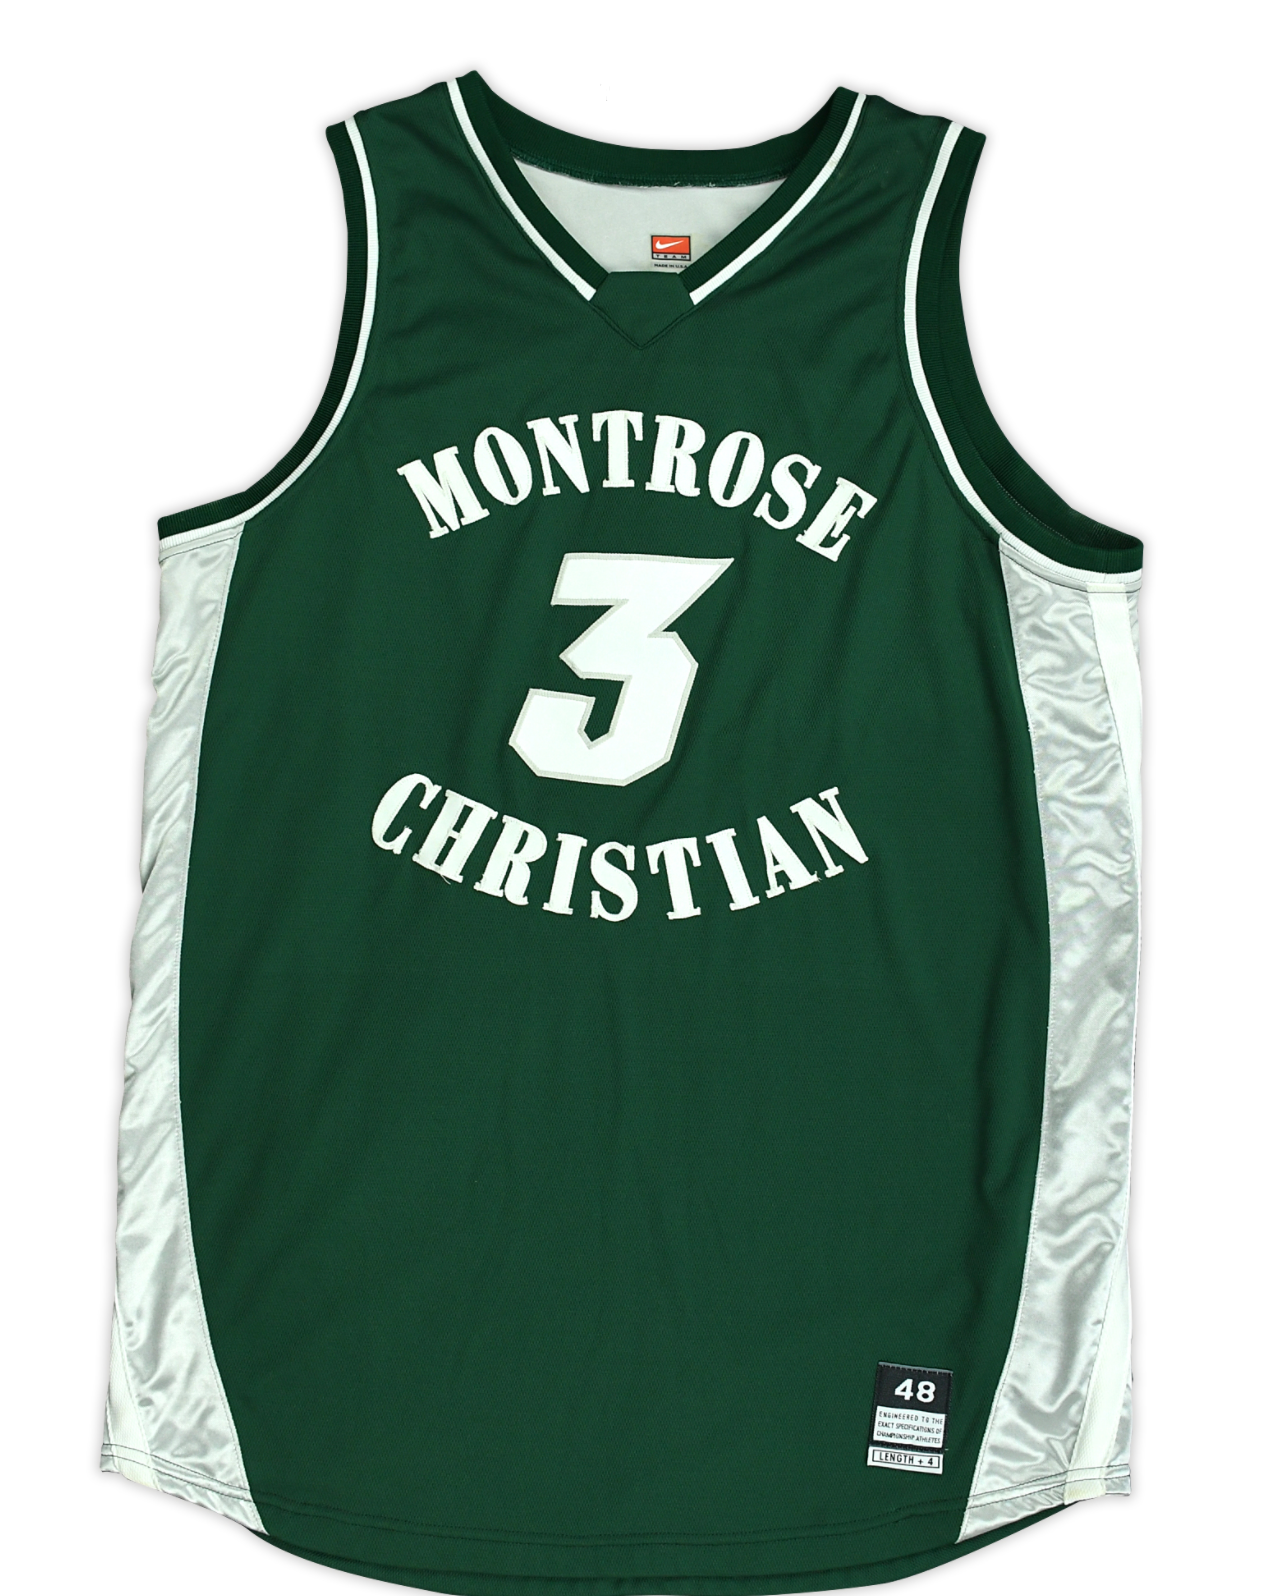 2005-06 Kevin Durant Montrose Christian High School Jersey